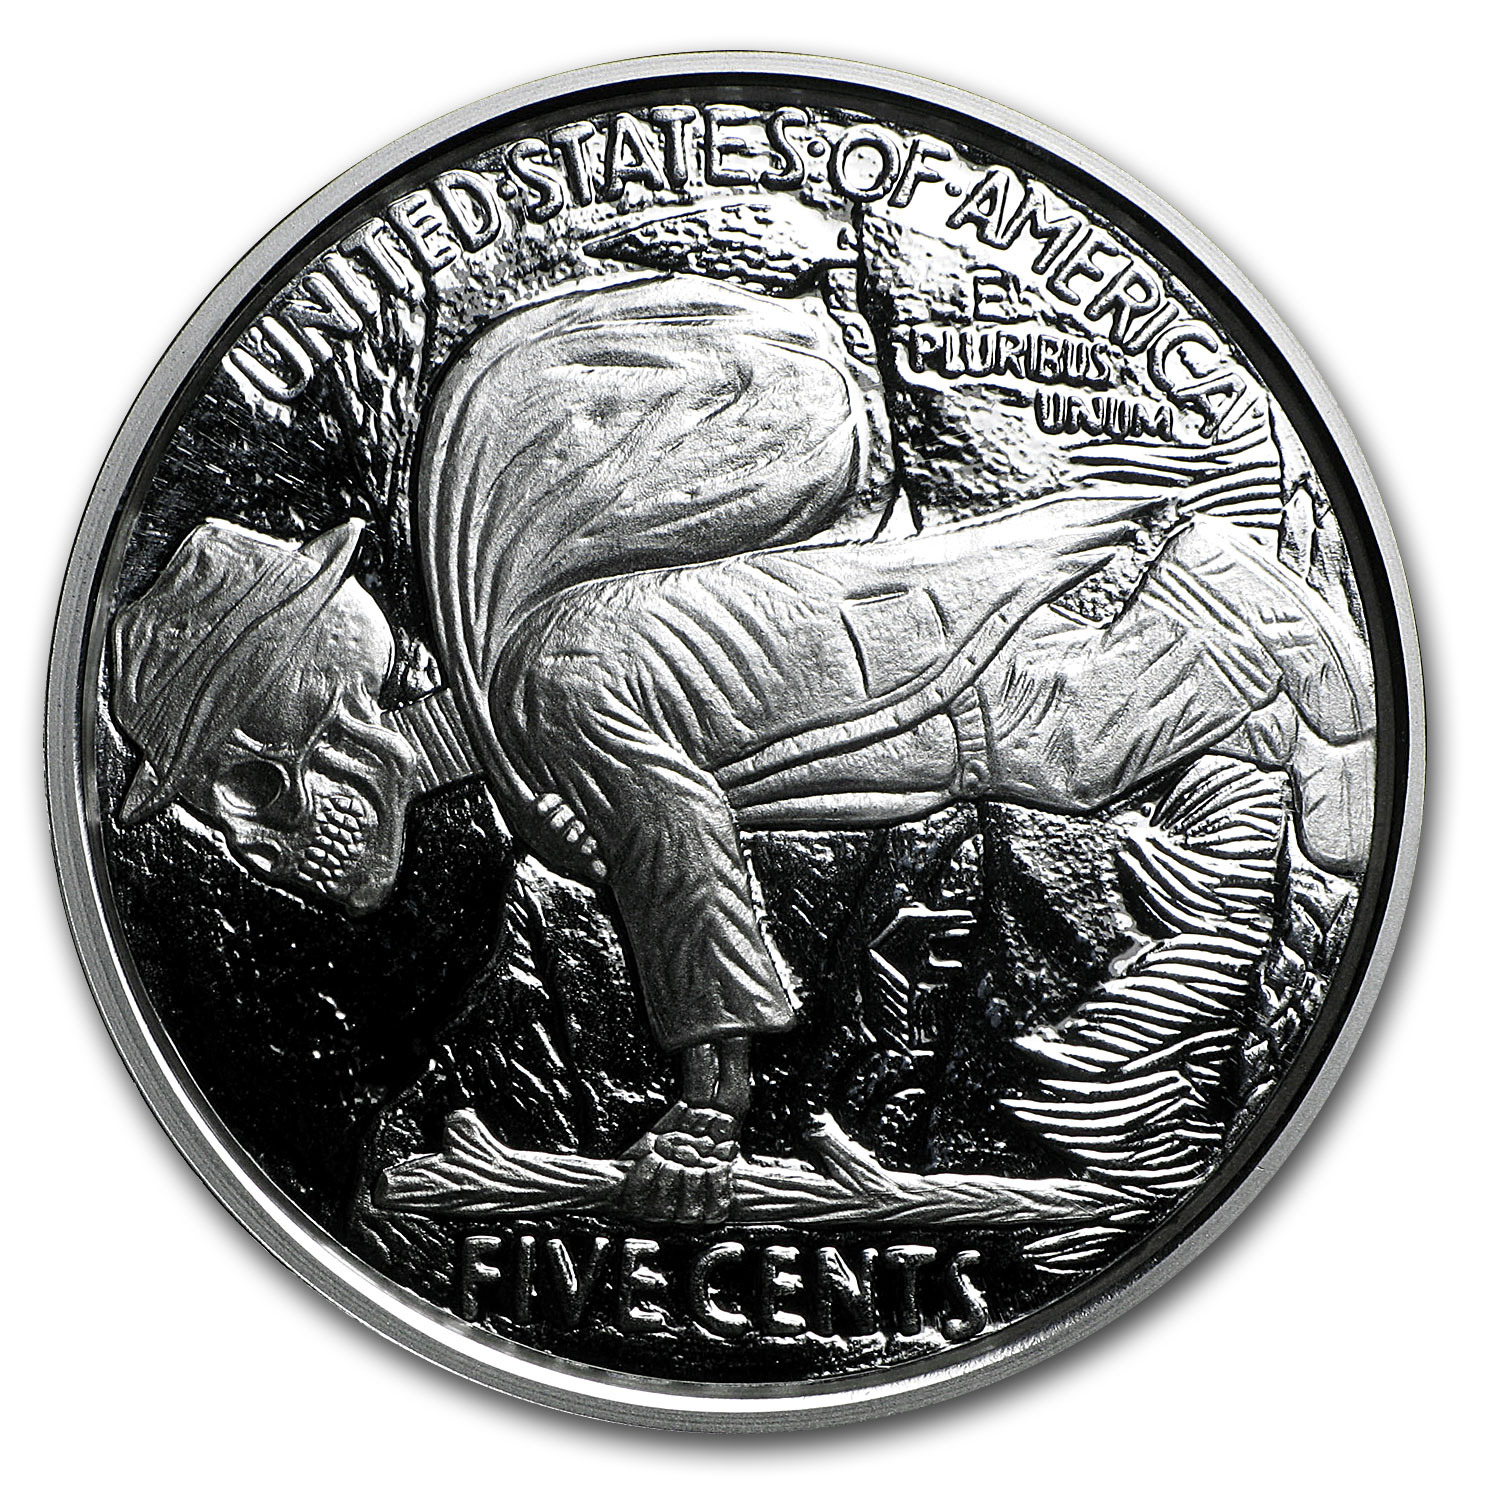 1 oz Silver Round - Hobo Nickel Replica (Skulls & Scrolls)